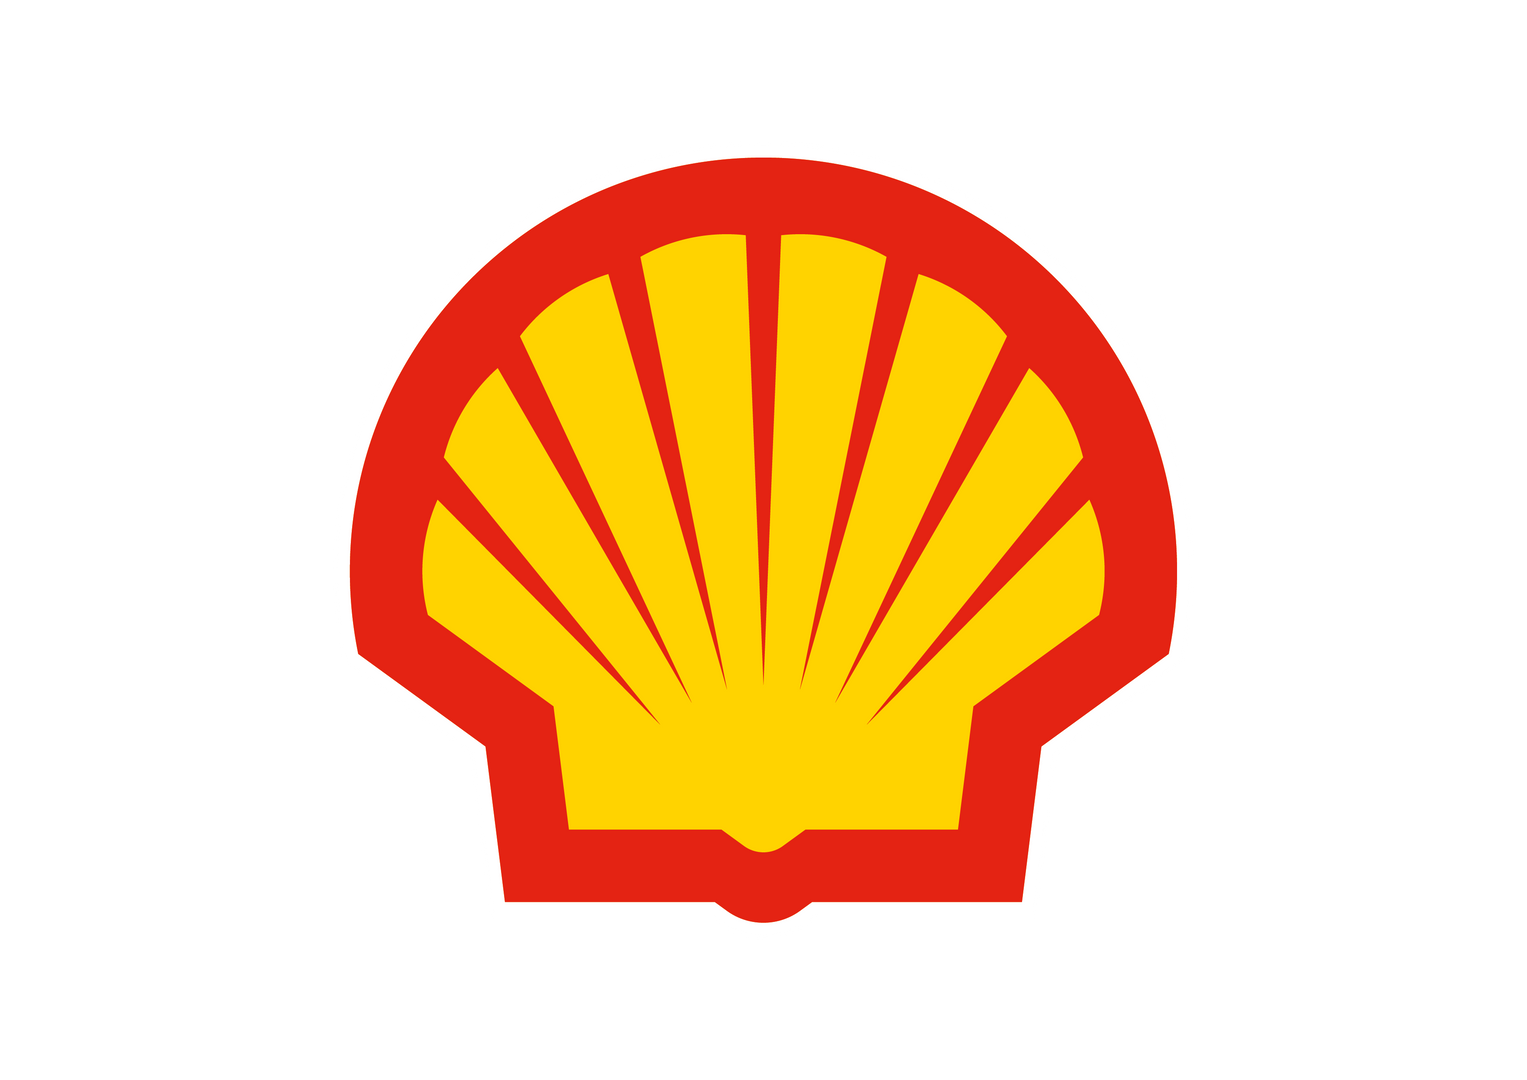 SHELL logo-01.png